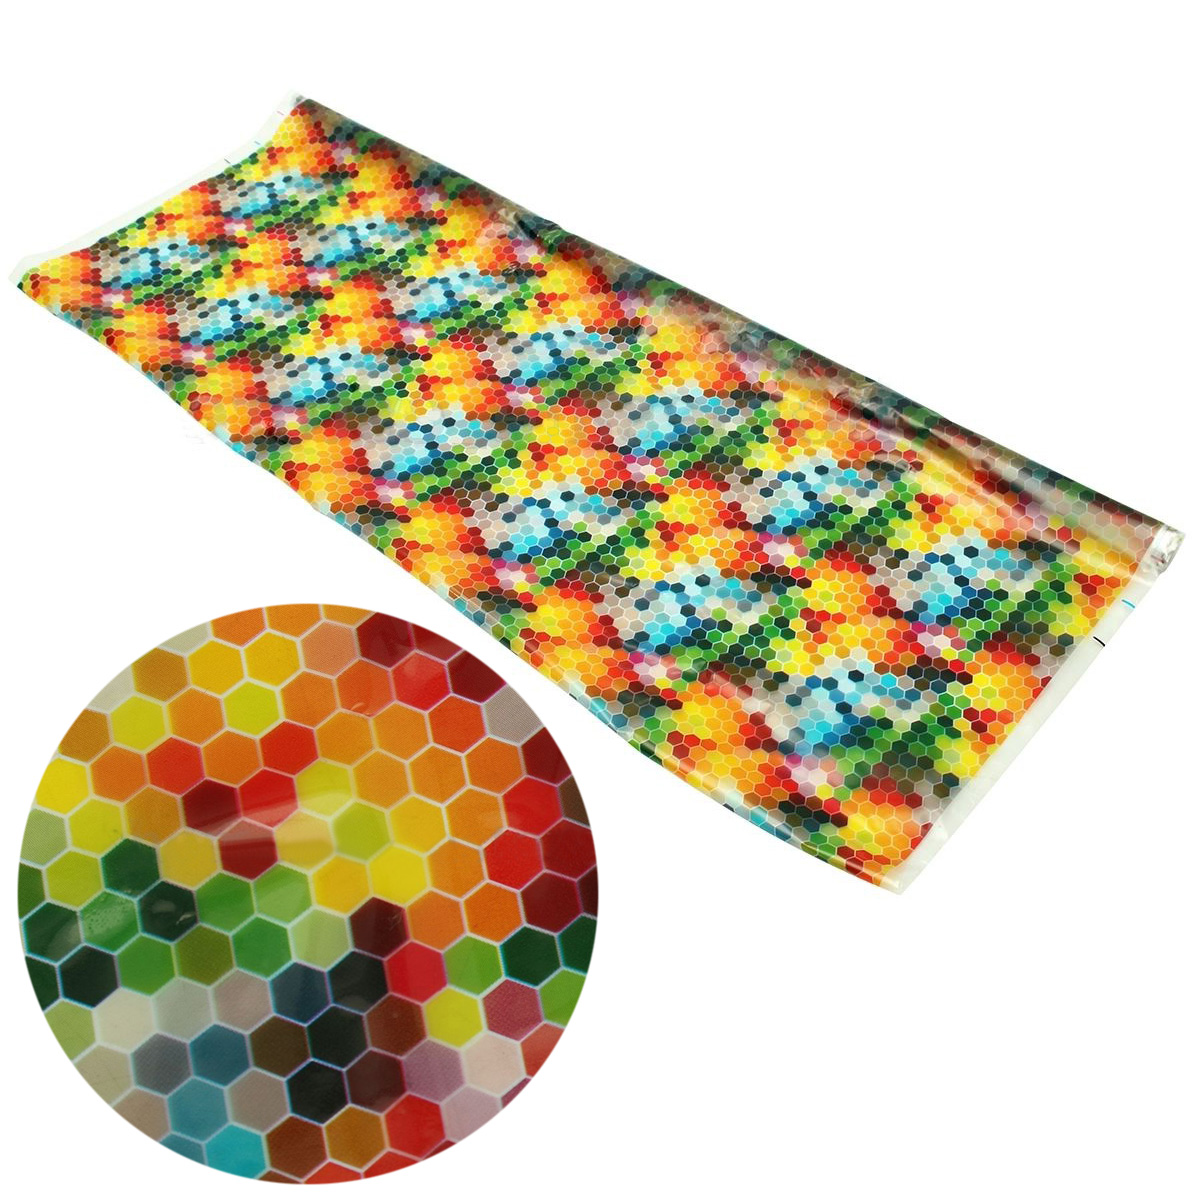 Jx Lclyl 051m Colorful Pva Water Transfer Film Dipping Japan Carbon Printing Hydrographic Hydro